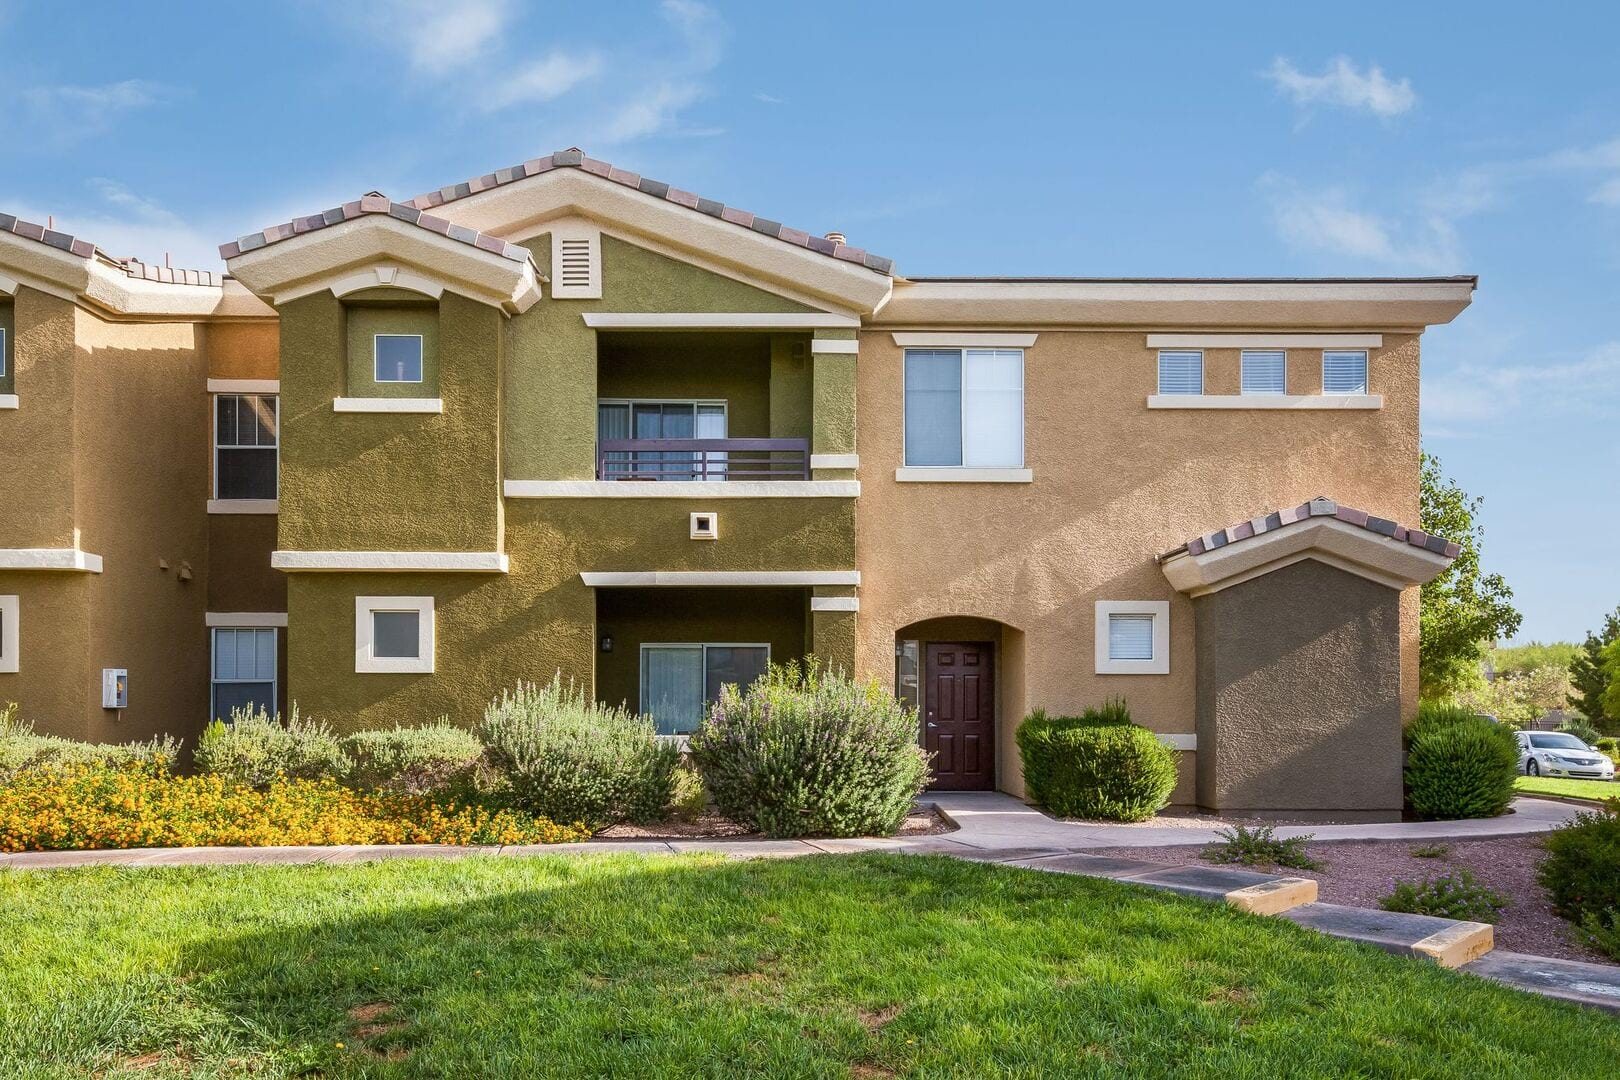 Apartments for Rent in Las Vegas, NV | Willowbrook - Home